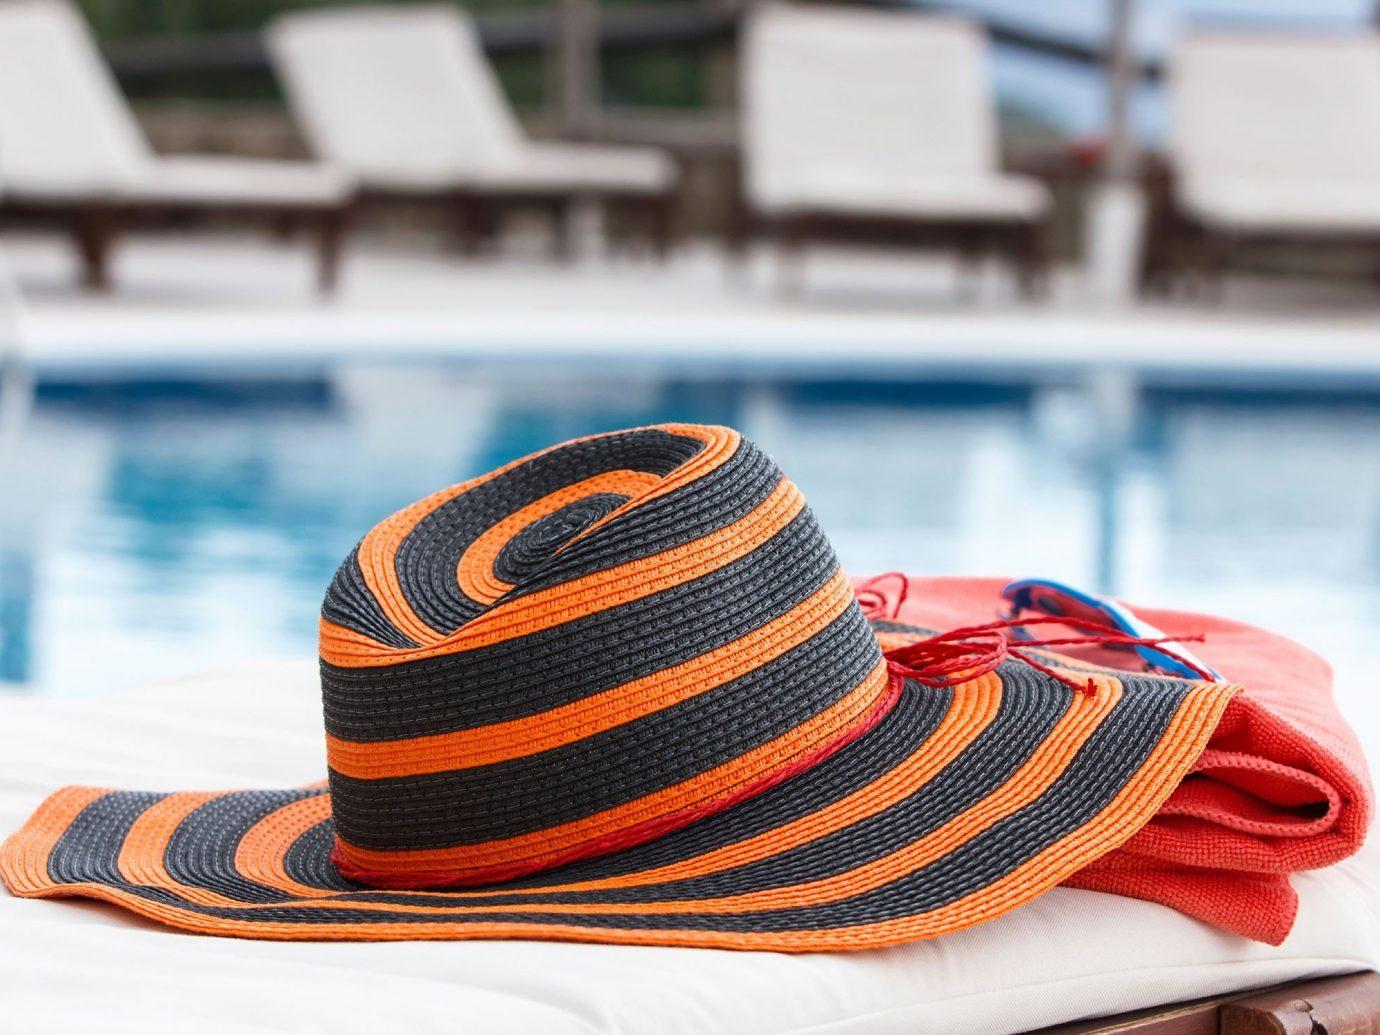 Hotels clothing outdoor person cap hat fashion accessory fedora headgear Design striped pattern orange